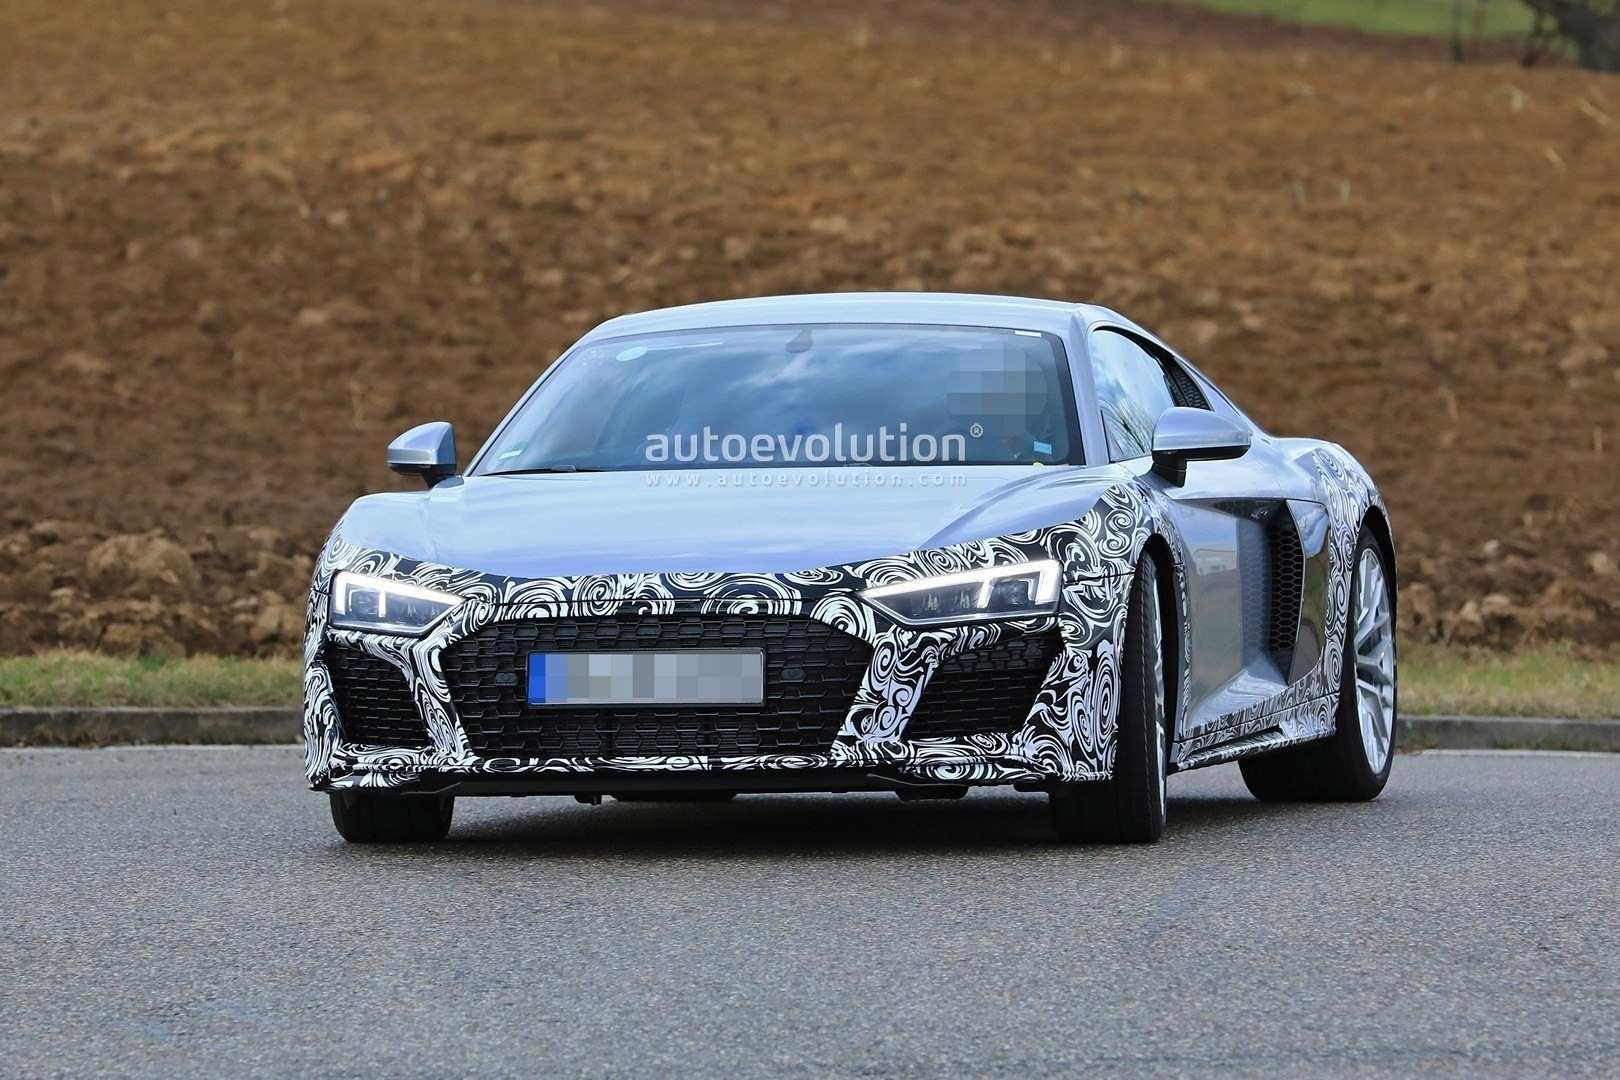 45 Gallery of 2020 Audi R8 LMXs Exterior for 2020 Audi R8 LMXs